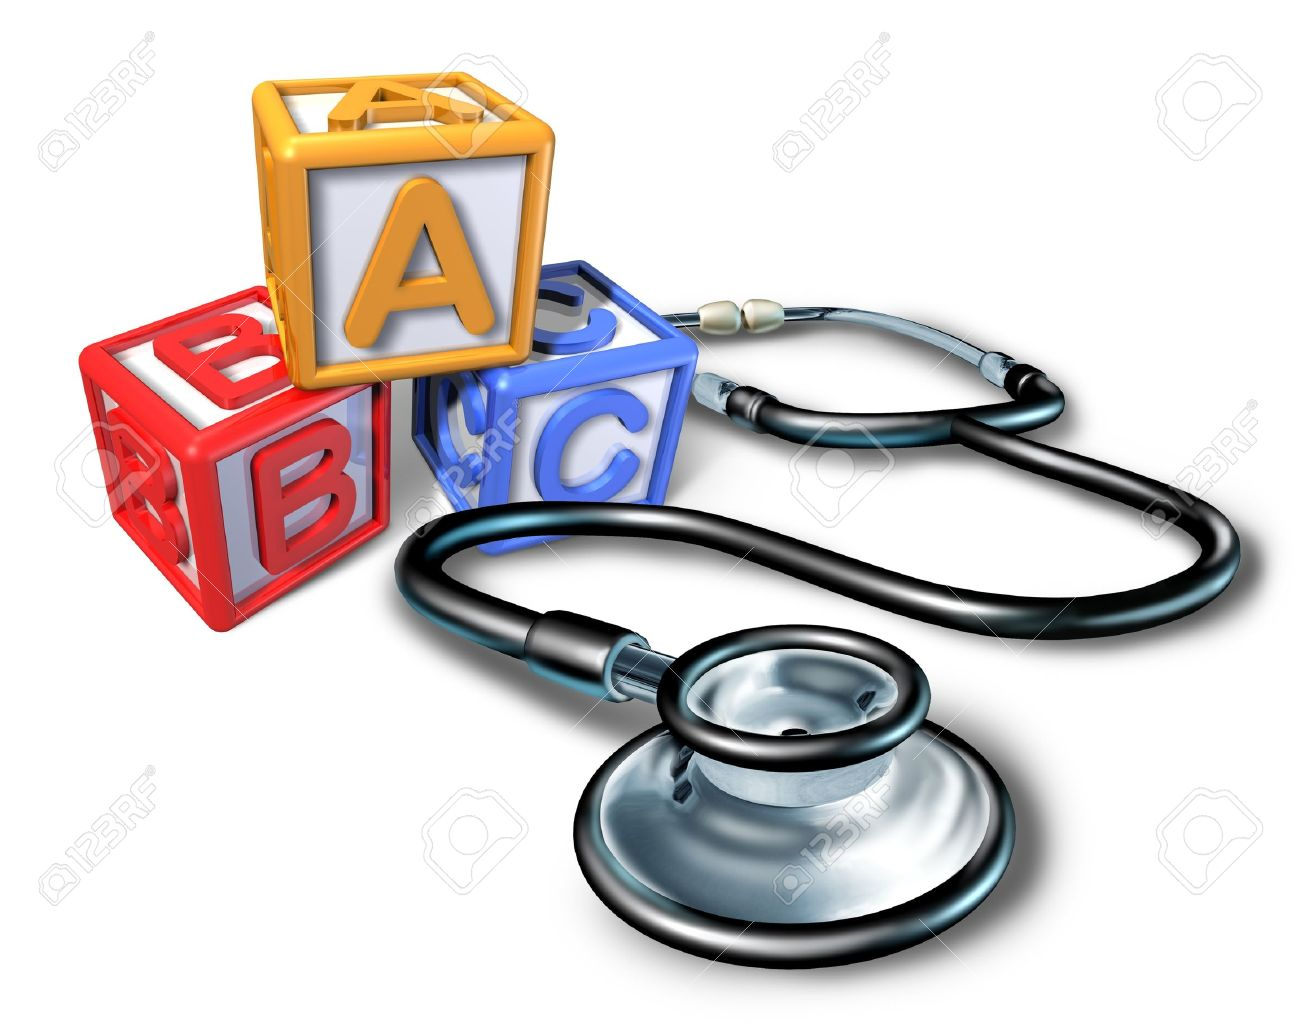 Pediatrics And Pediatrician Medical Symbol Representing Children Stock Photo Picture And Royalty Free Image Image 10609207